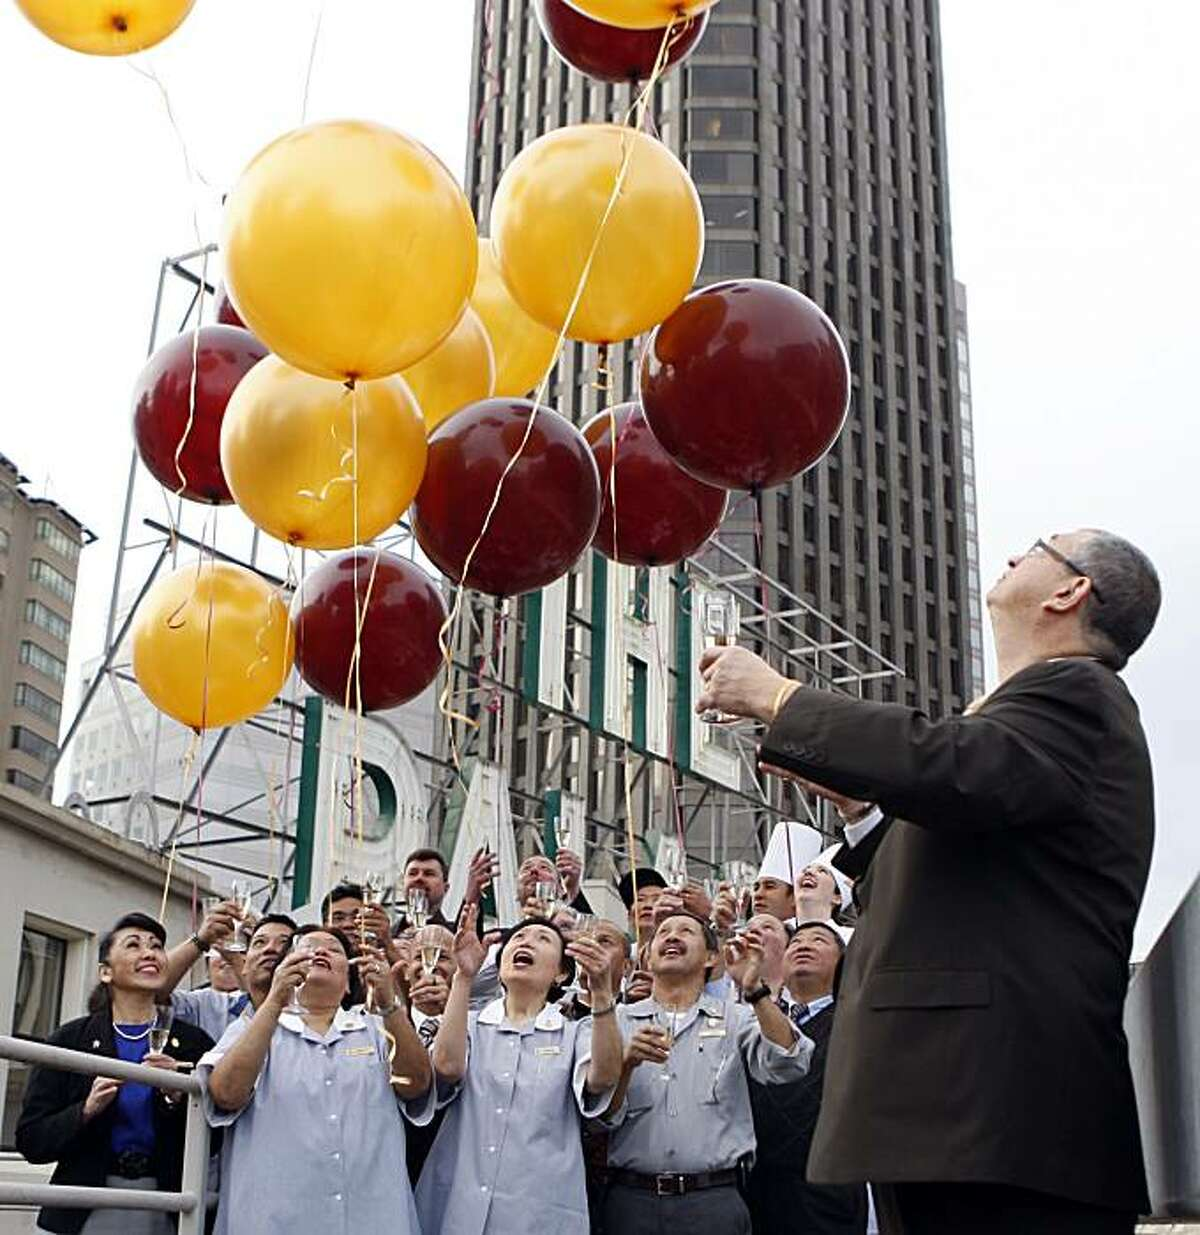 Clem Esmail General Manager of the Palace Hotel in San Francisco released a balloon that has the key to the Presidential suite in front of long term employees, marking the 100th anniversary of the hotel. Tuesday Dec 15, 2009